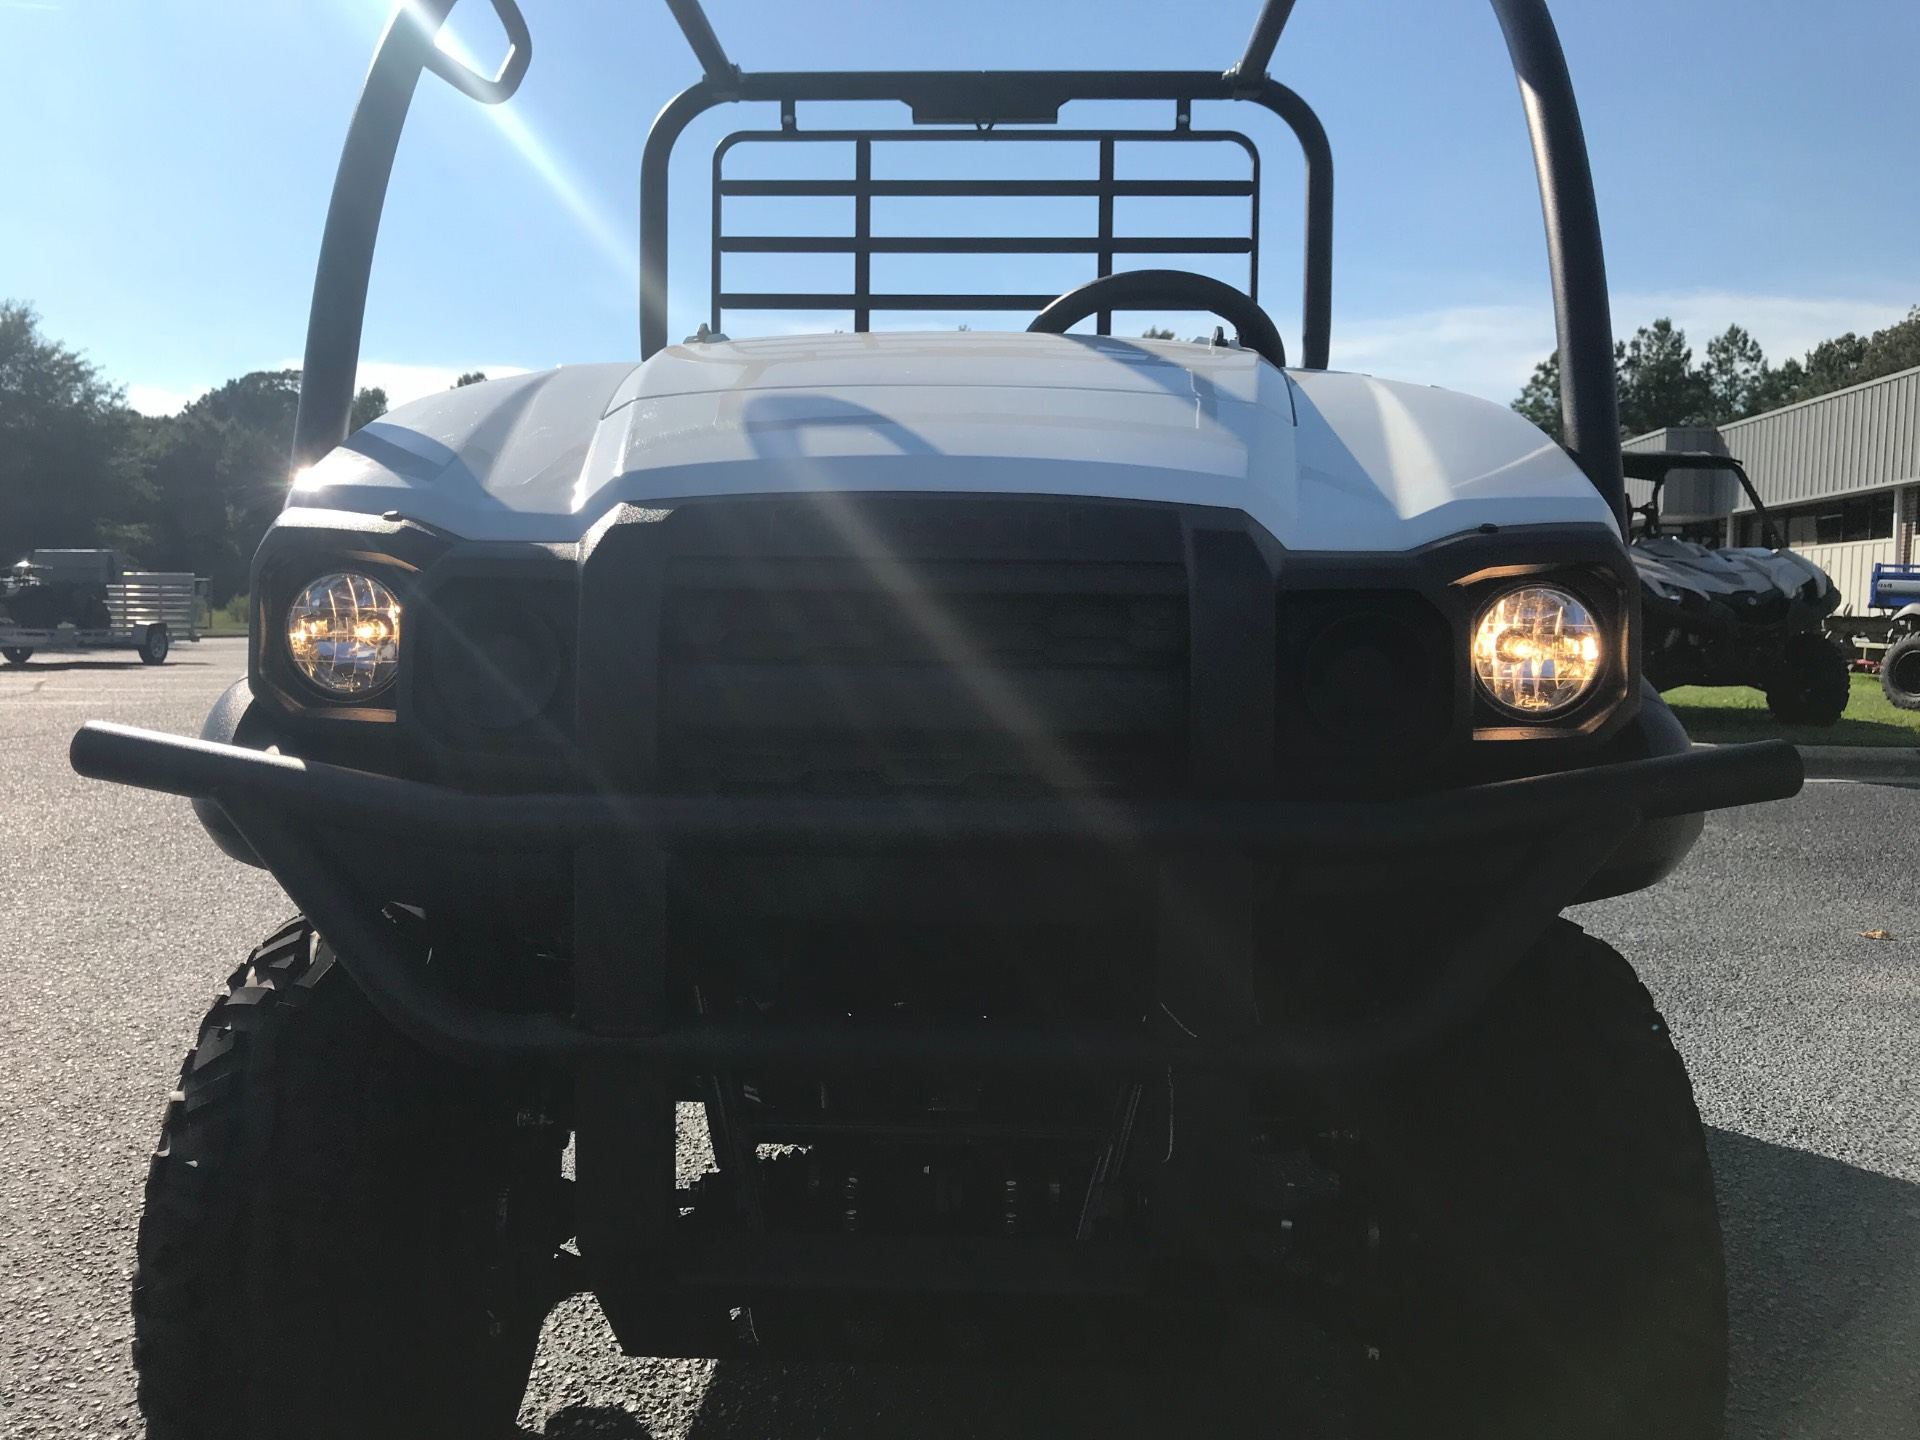 2019 Kawasaki Mule SX 4X4 SE in Greenville, North Carolina - Photo 14